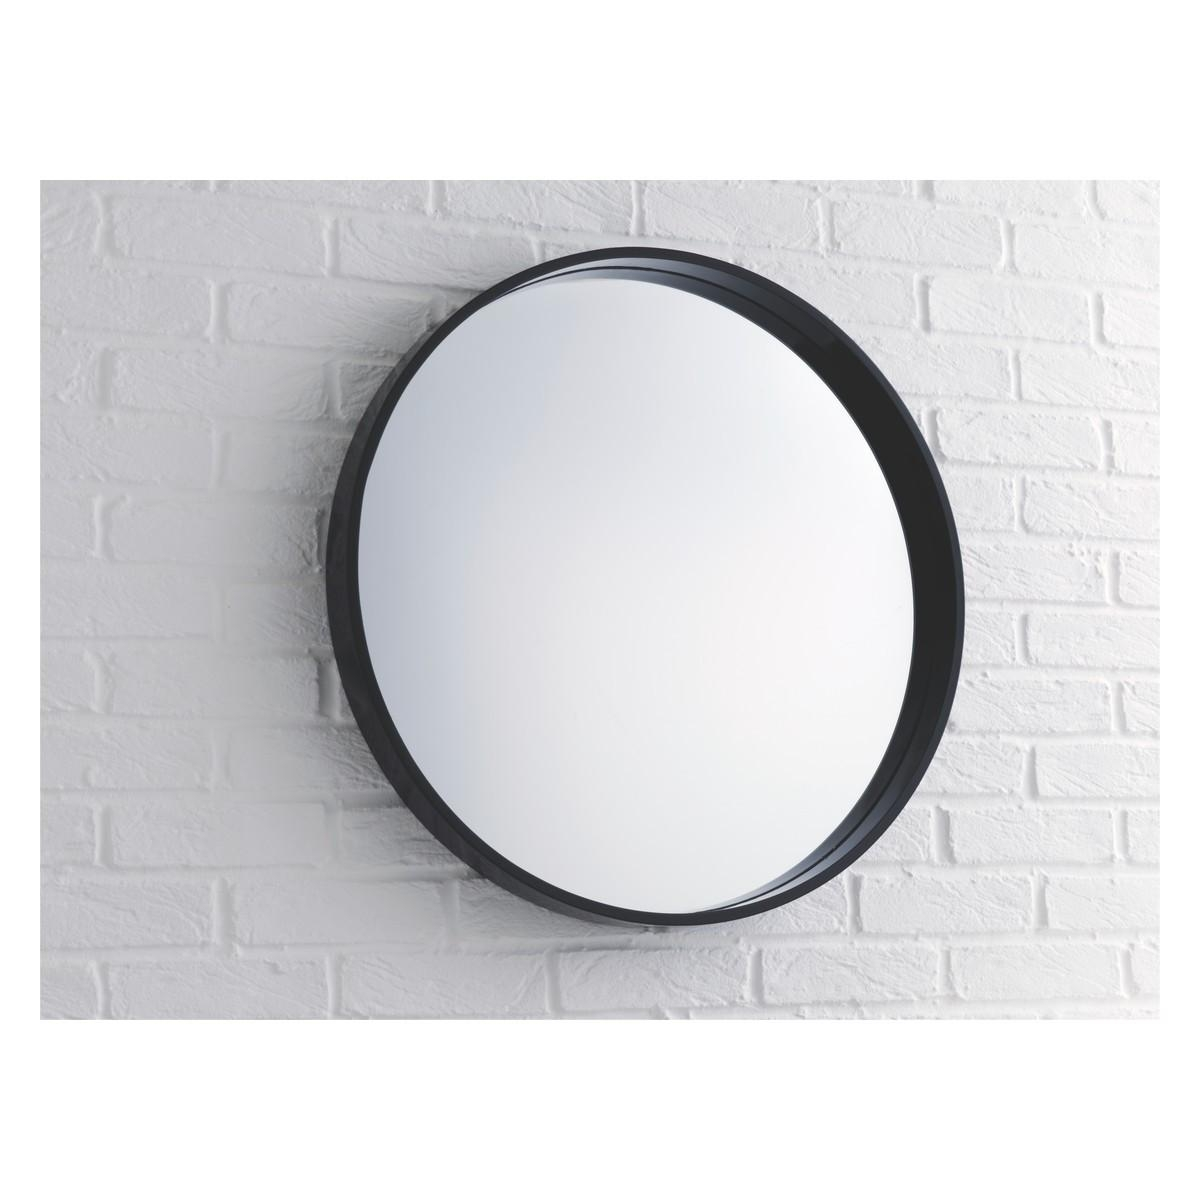 Small Round Black Wall Mirrors | Vanity Decoration With Regard To Large Round Black Mirror (Image 20 of 20)